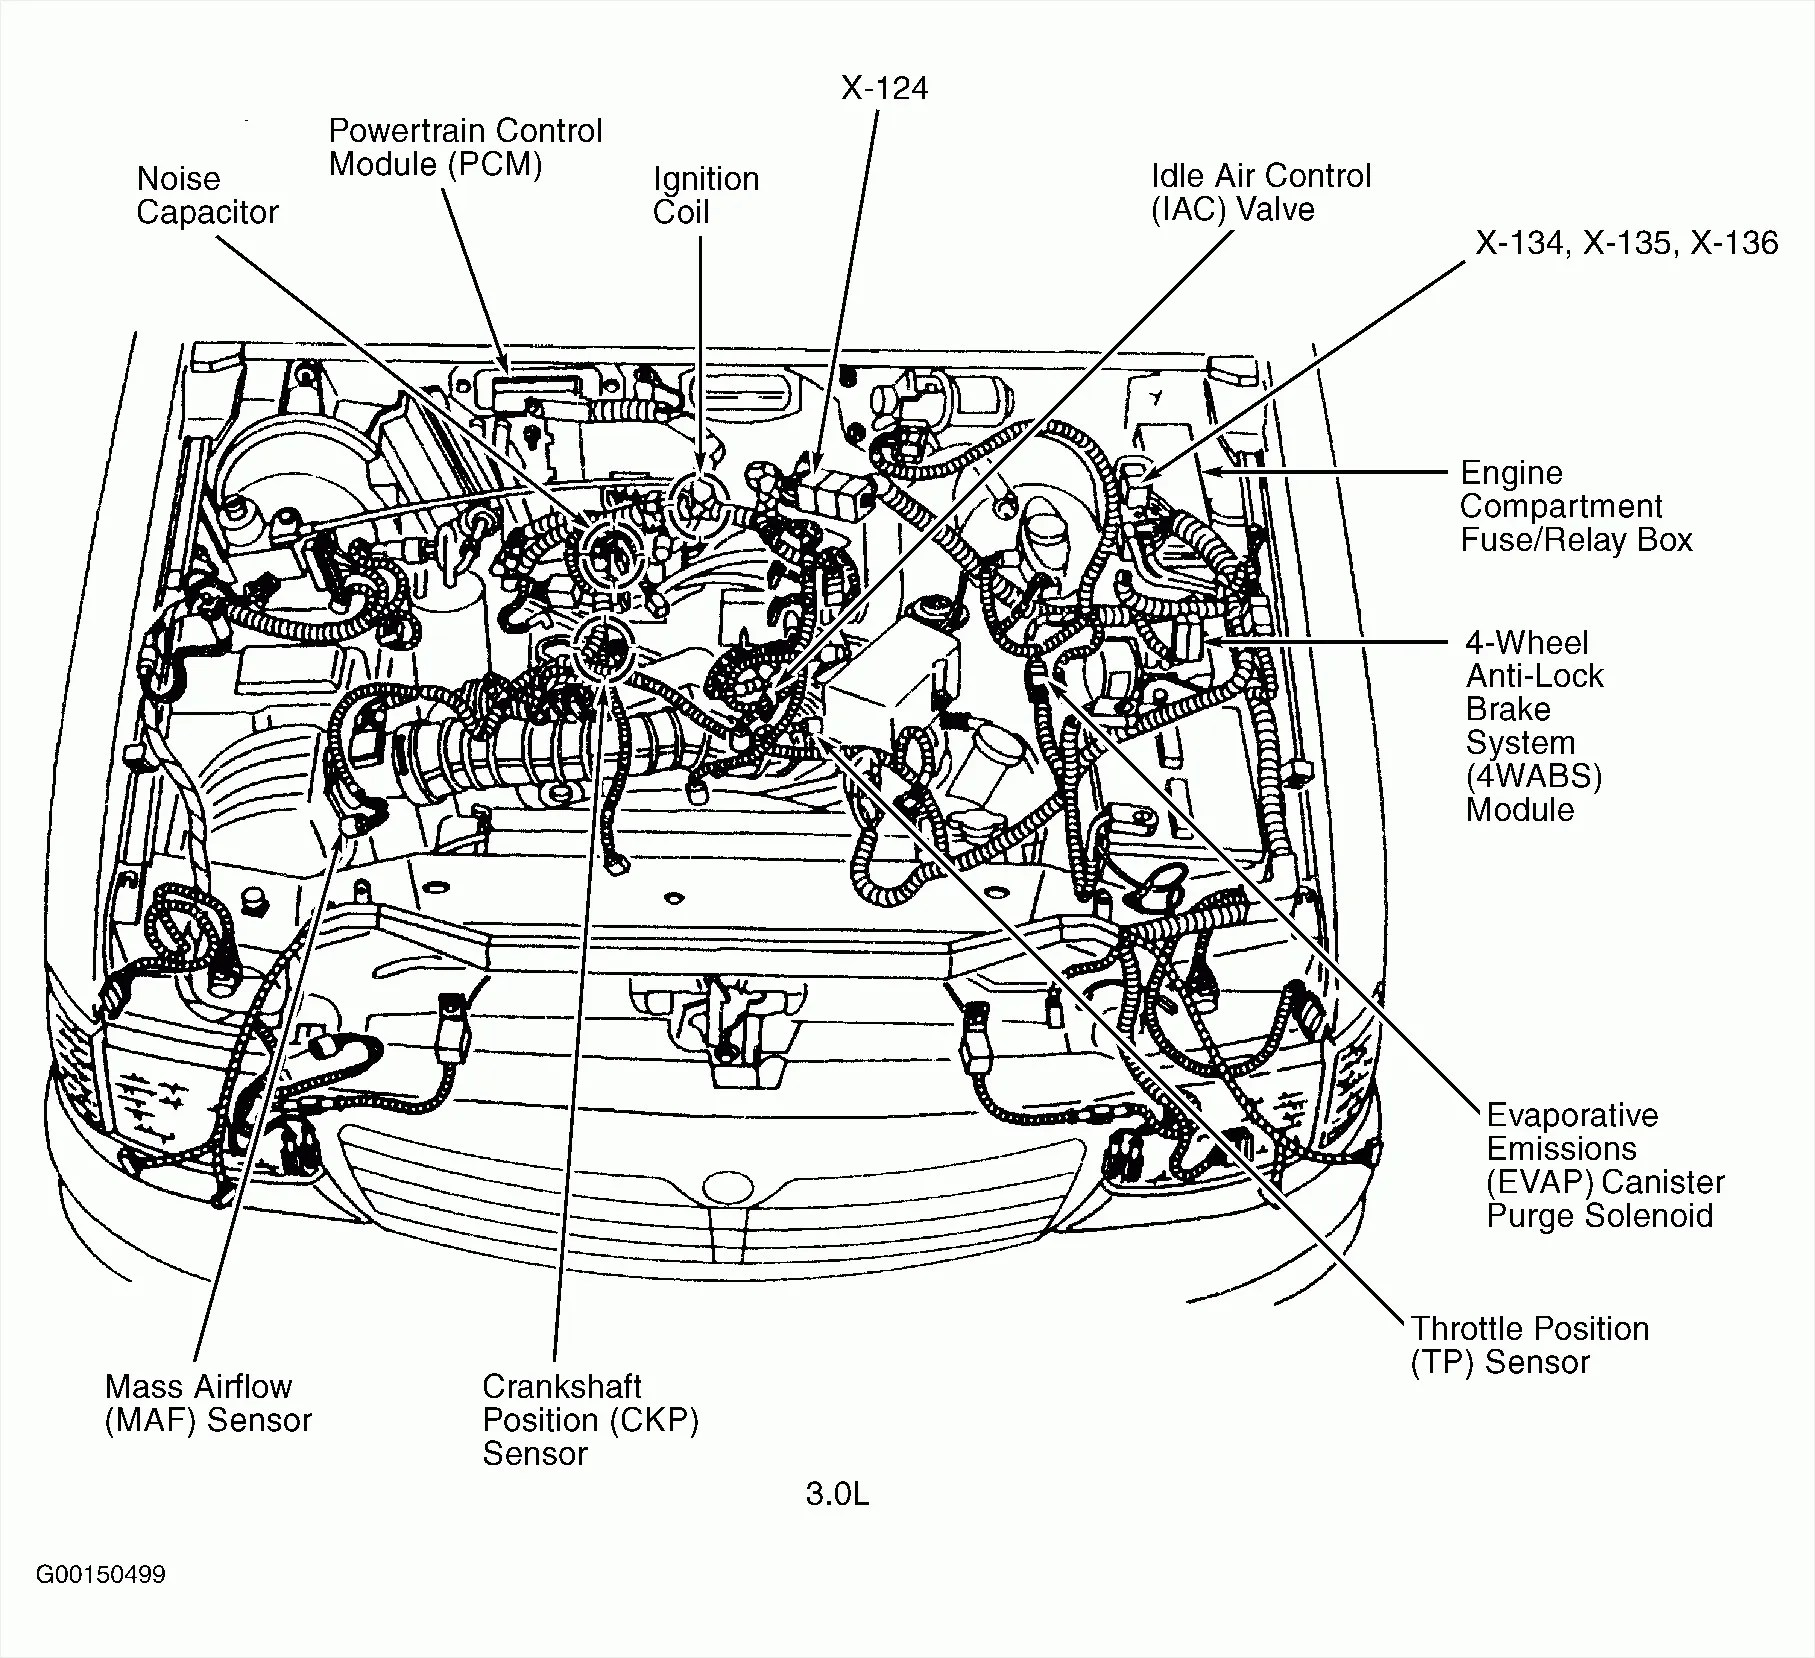 hight resolution of diagram of a 3 3 olds engine wiring diagram portal 1999 dodge avenger engine diagram 2000 dodge intrepid engine diagram